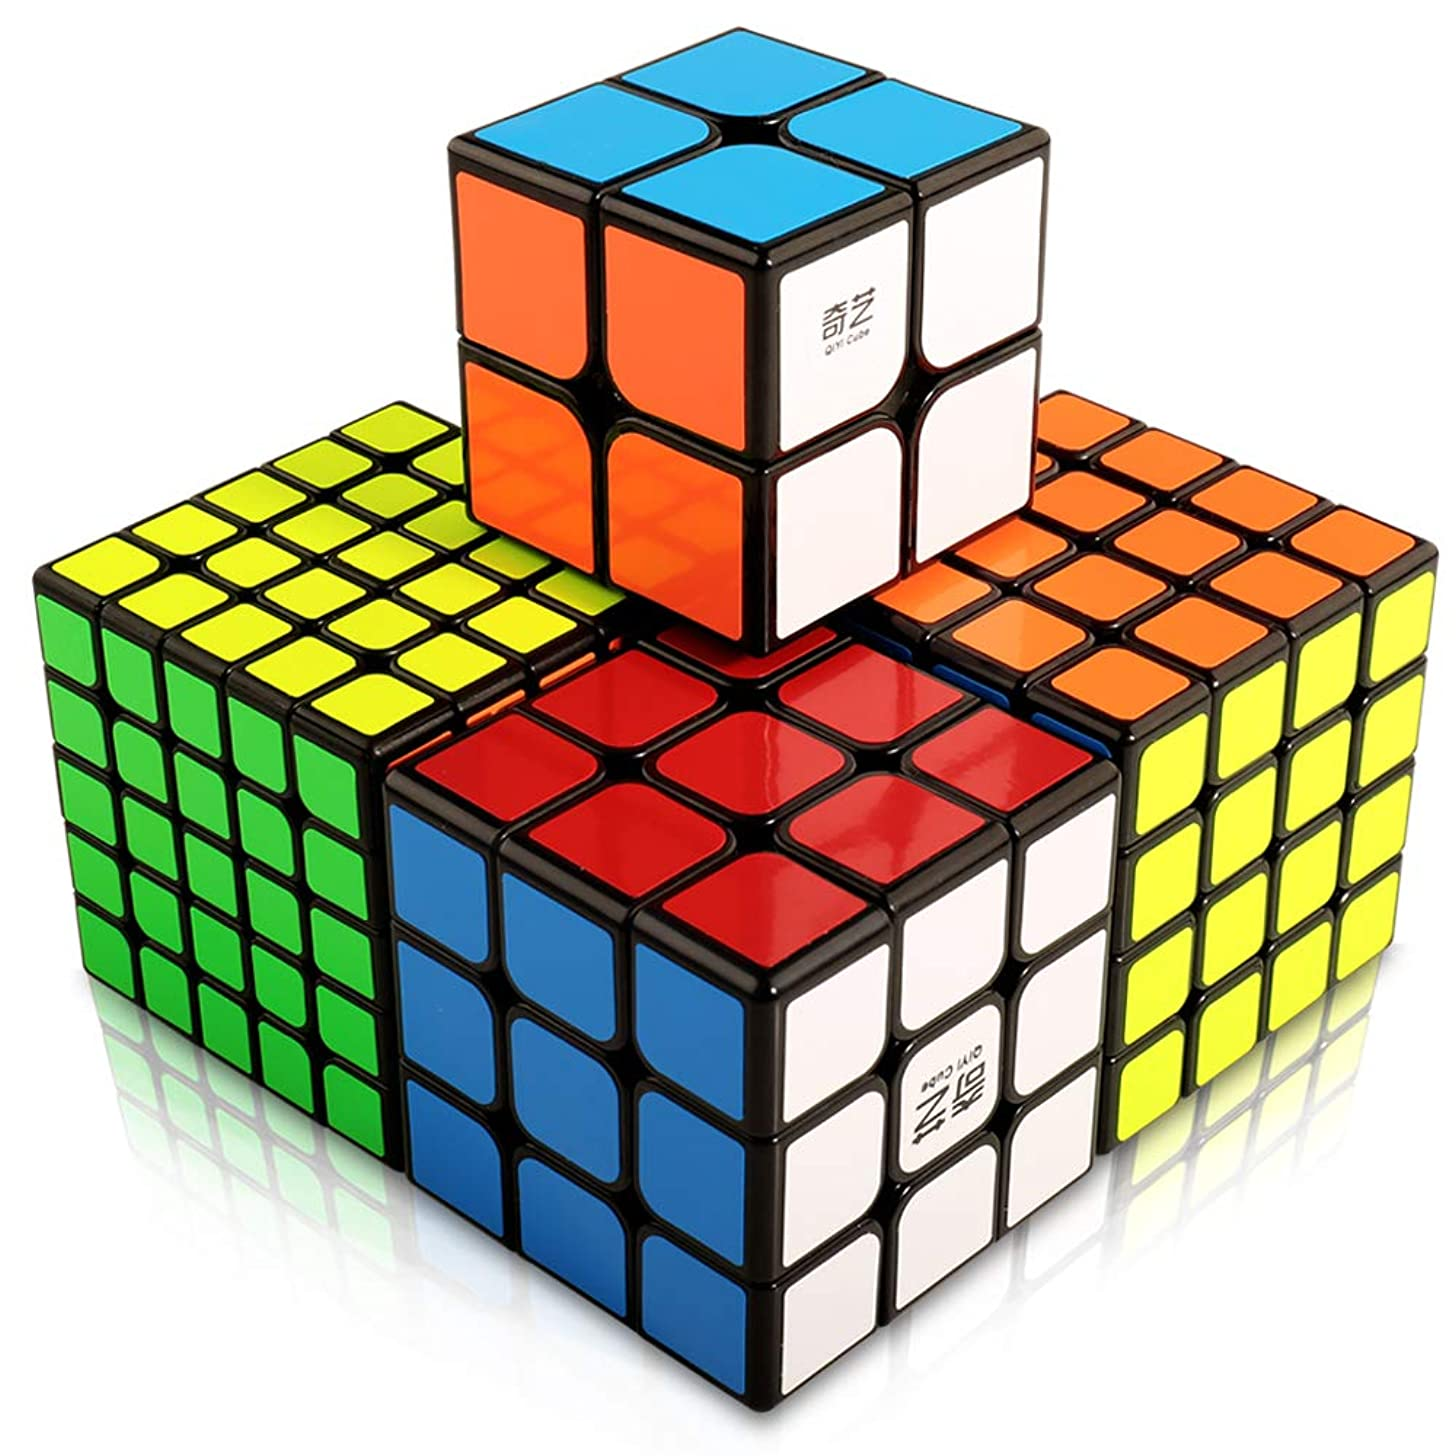 HQQNUO Speed Cube Set Cube Bundle 2x2 3x3 4x4 5x5 Vivid Color Sticker Magic Cube Set Puzzle Toys for Kids and Adults (Set of 4)